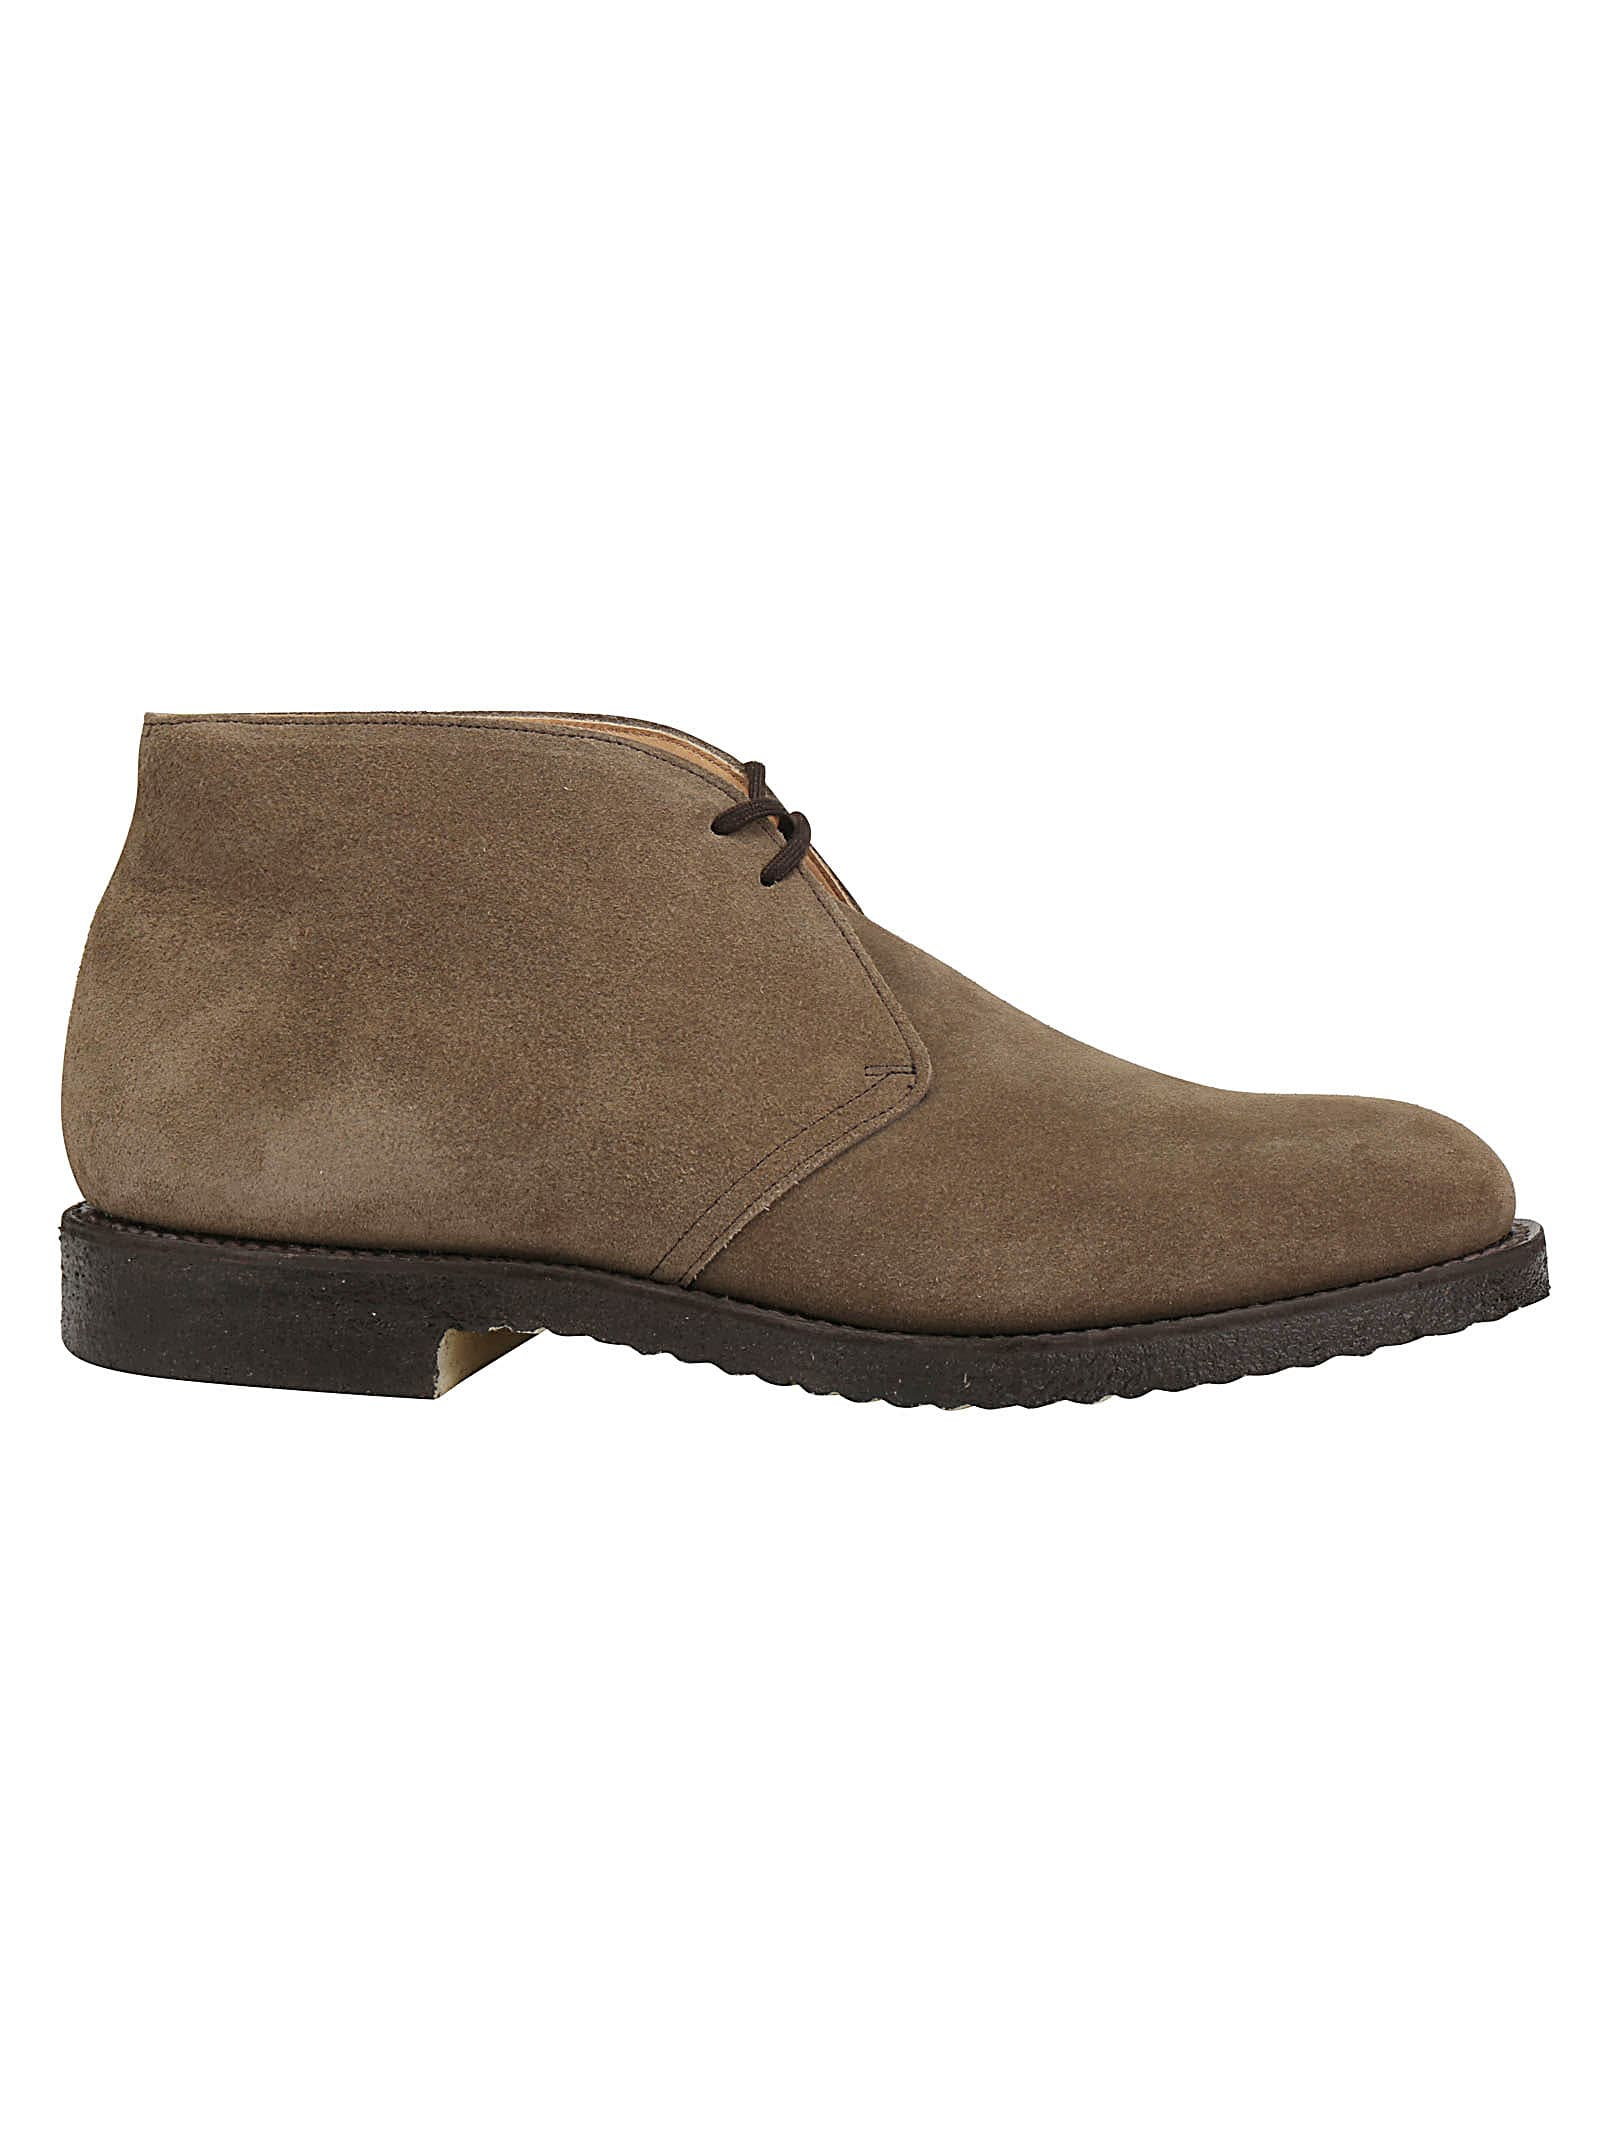 Churchs Ryder Ankle Boots